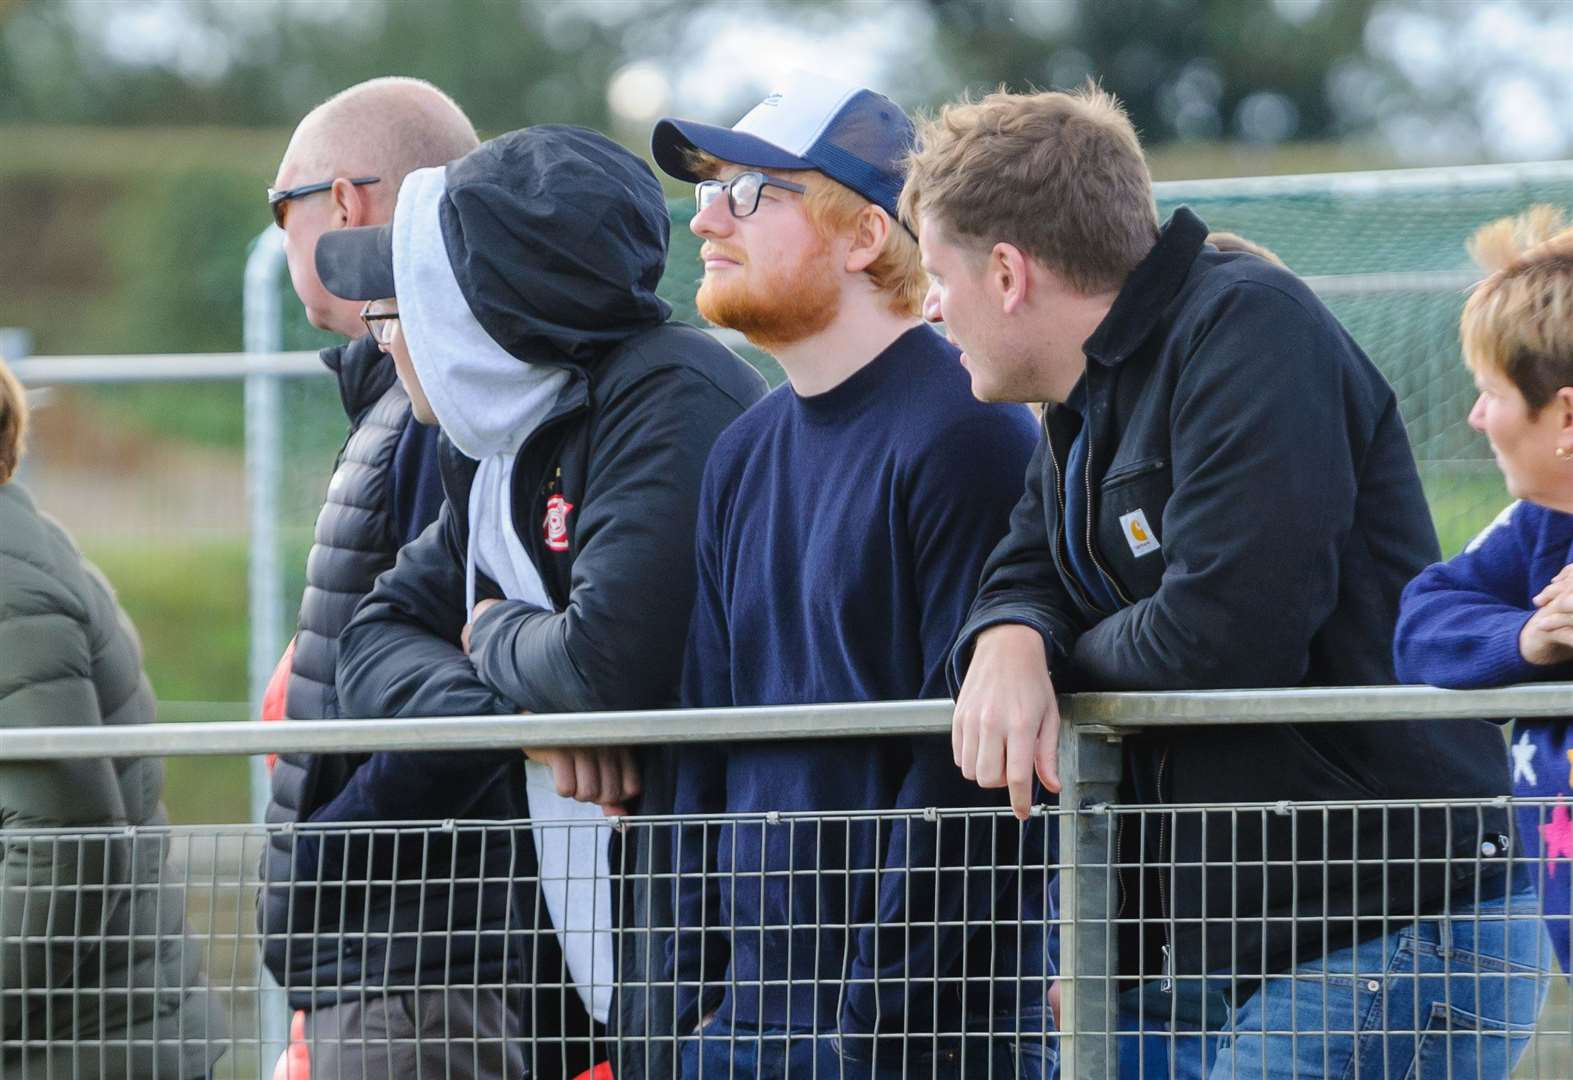 Ed Sheeran spotted cheering on wife at hockey game